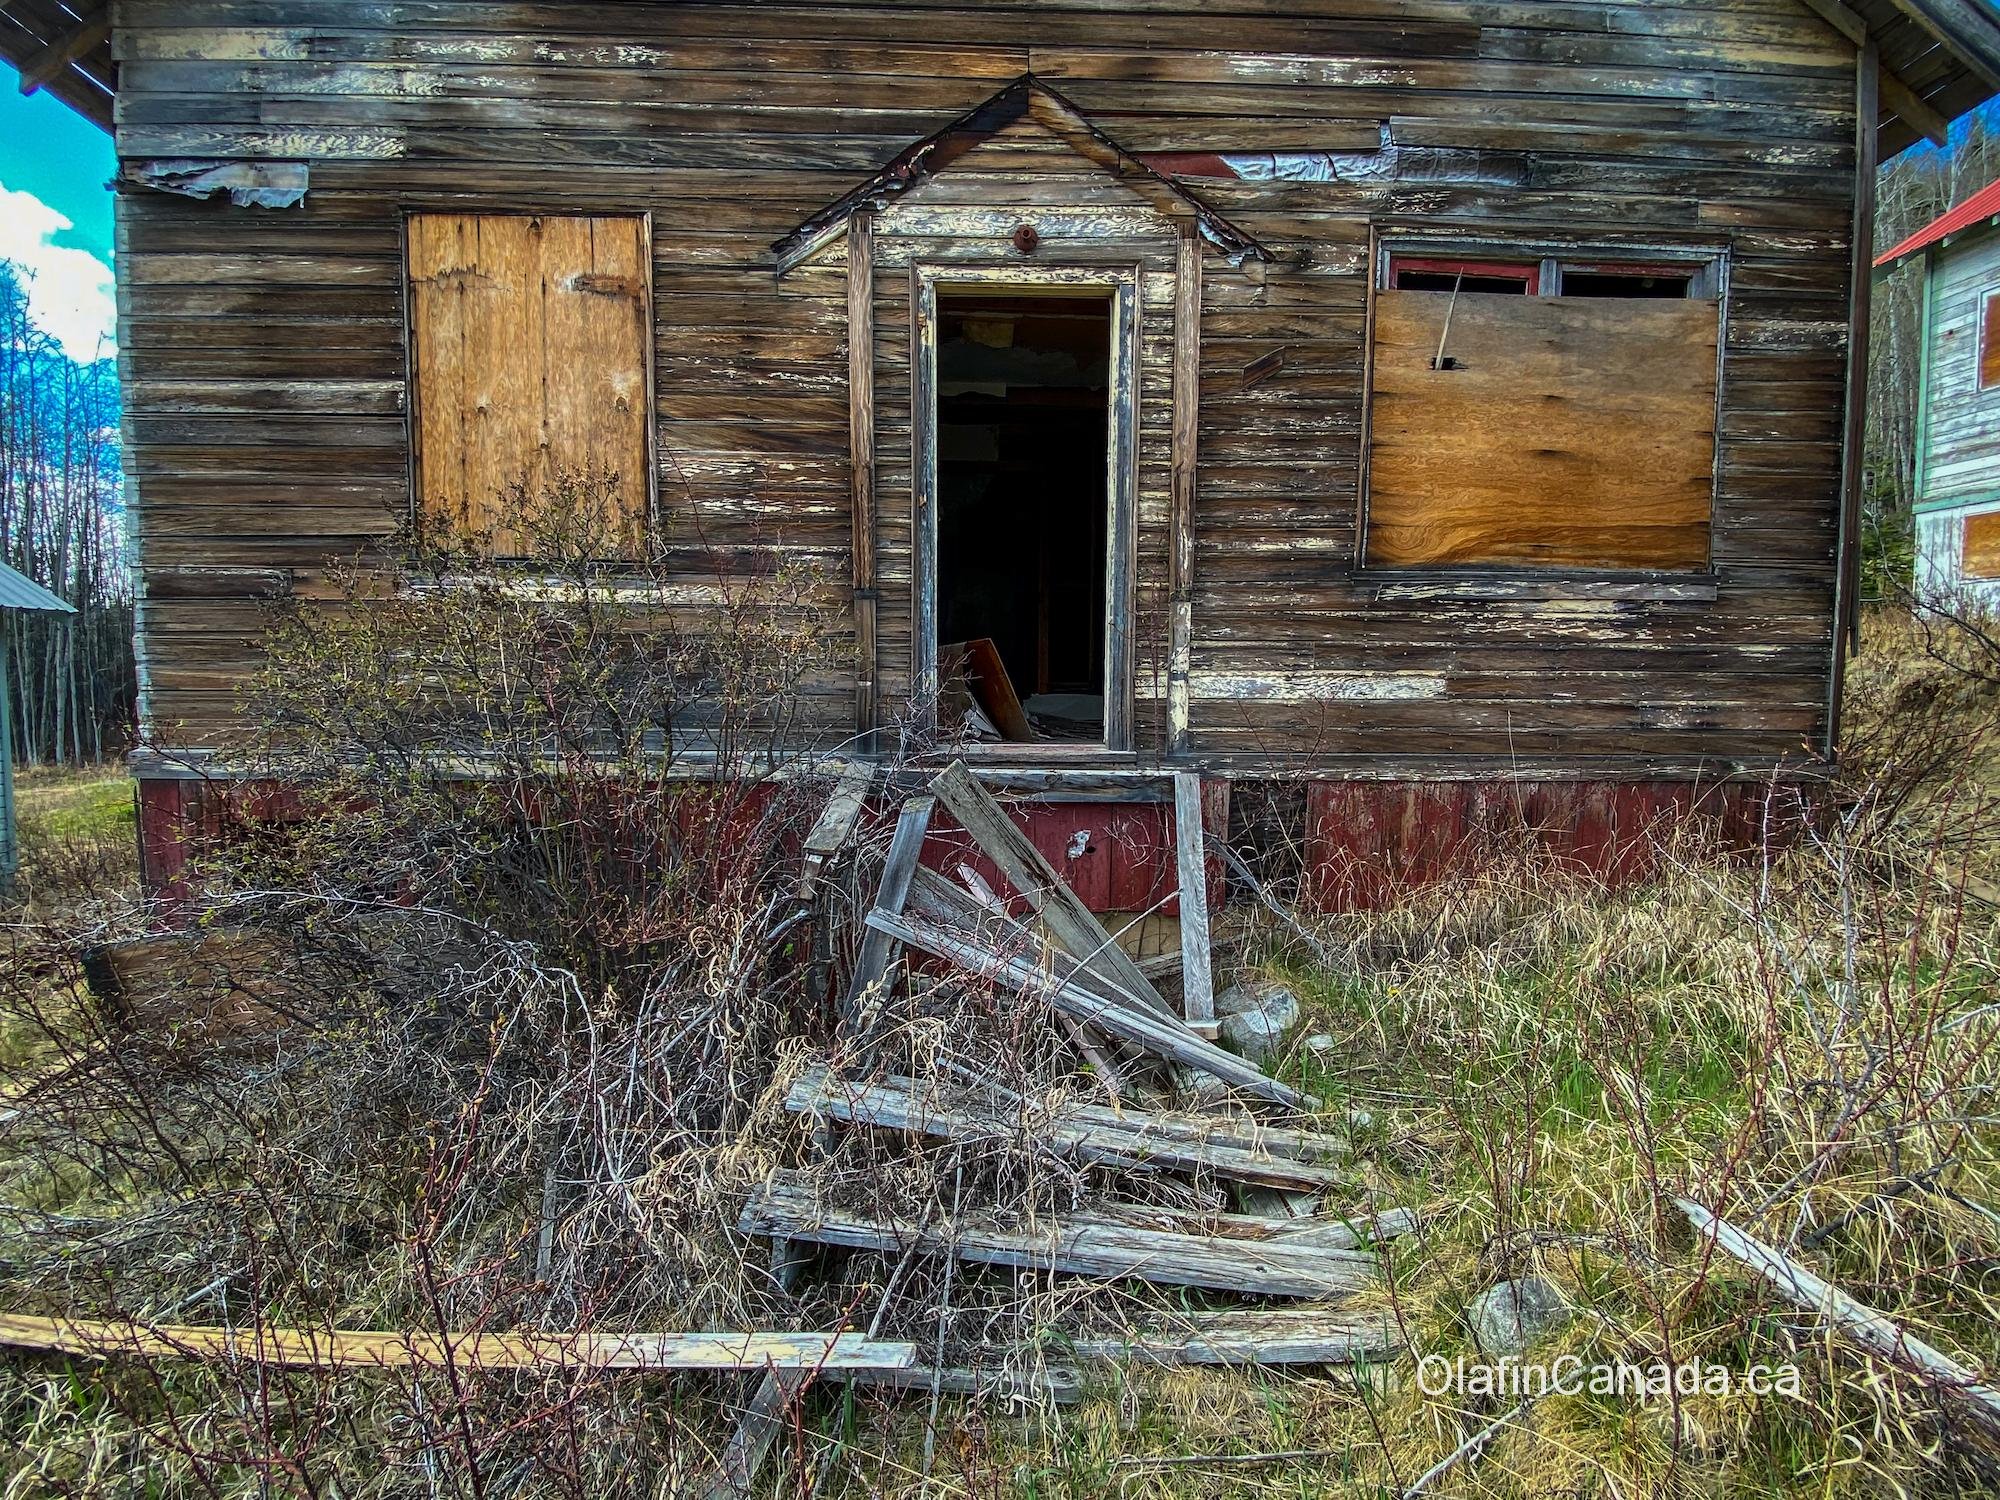 Collapsed stairs in front of house in abandoned Bradian #olafincanada #britishcolumbia #discoverbc #abandonedbc #bradian